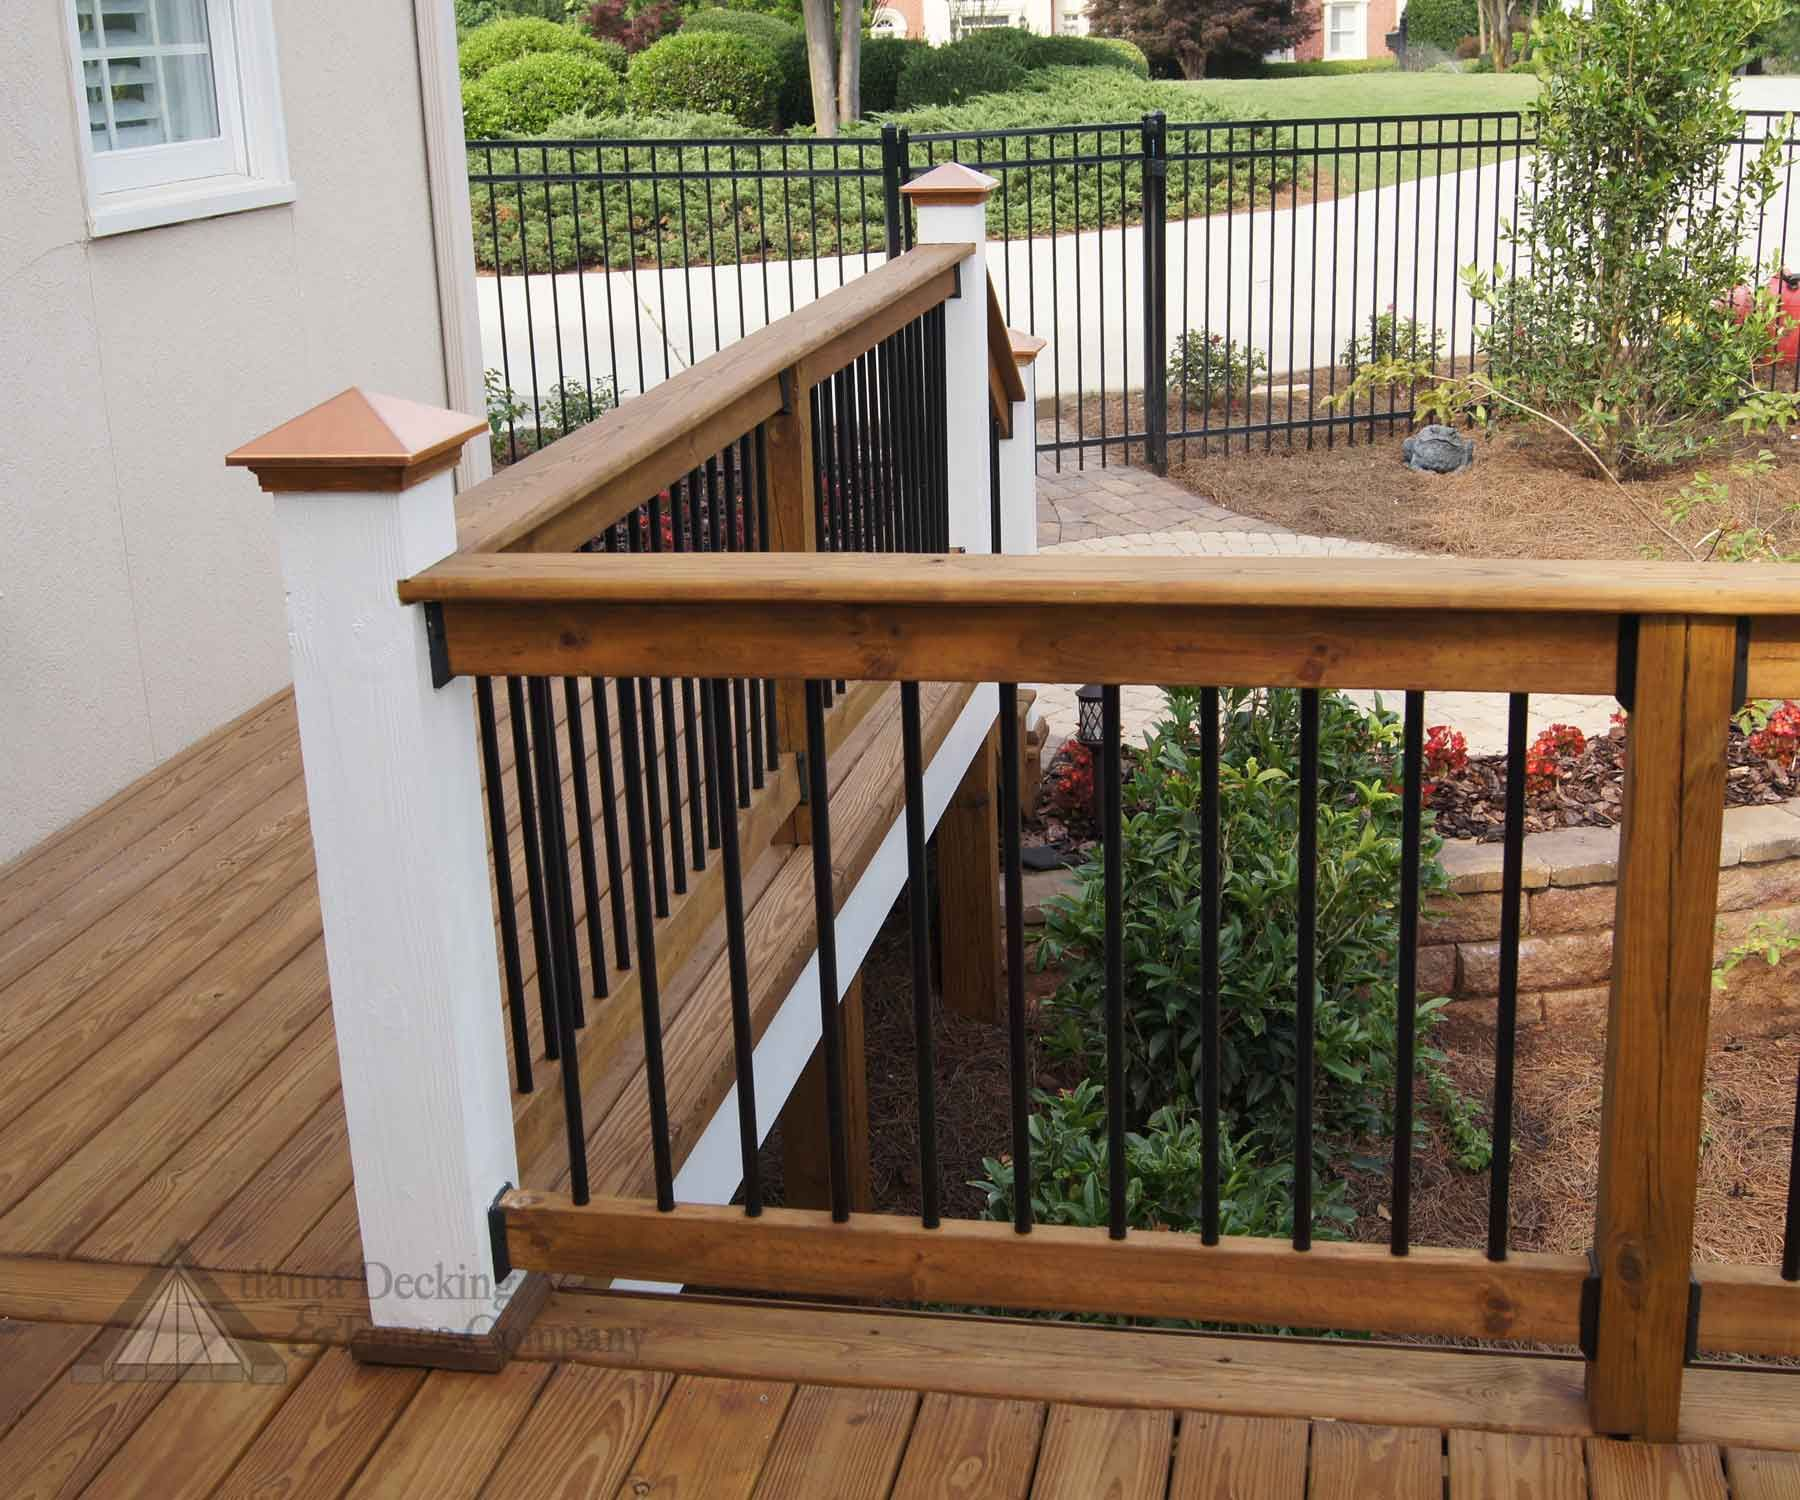 Ideas For Deck Designs deck planters Wallpaper Deck Railing Ideas 1800x1500 Pin Wood